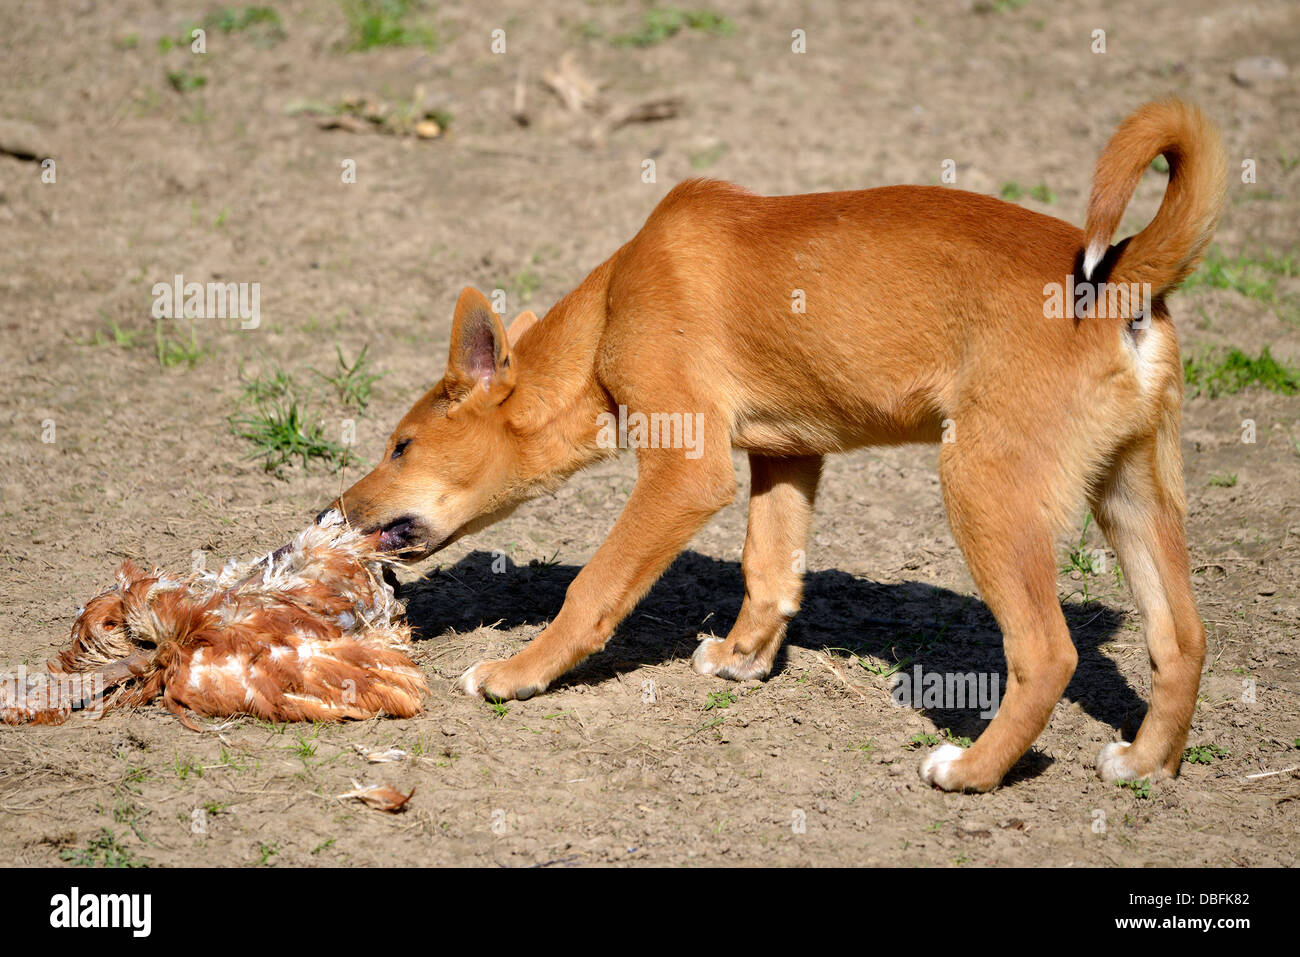 Young dingo (Canis lupus dingo) eating poultry - Stock Image